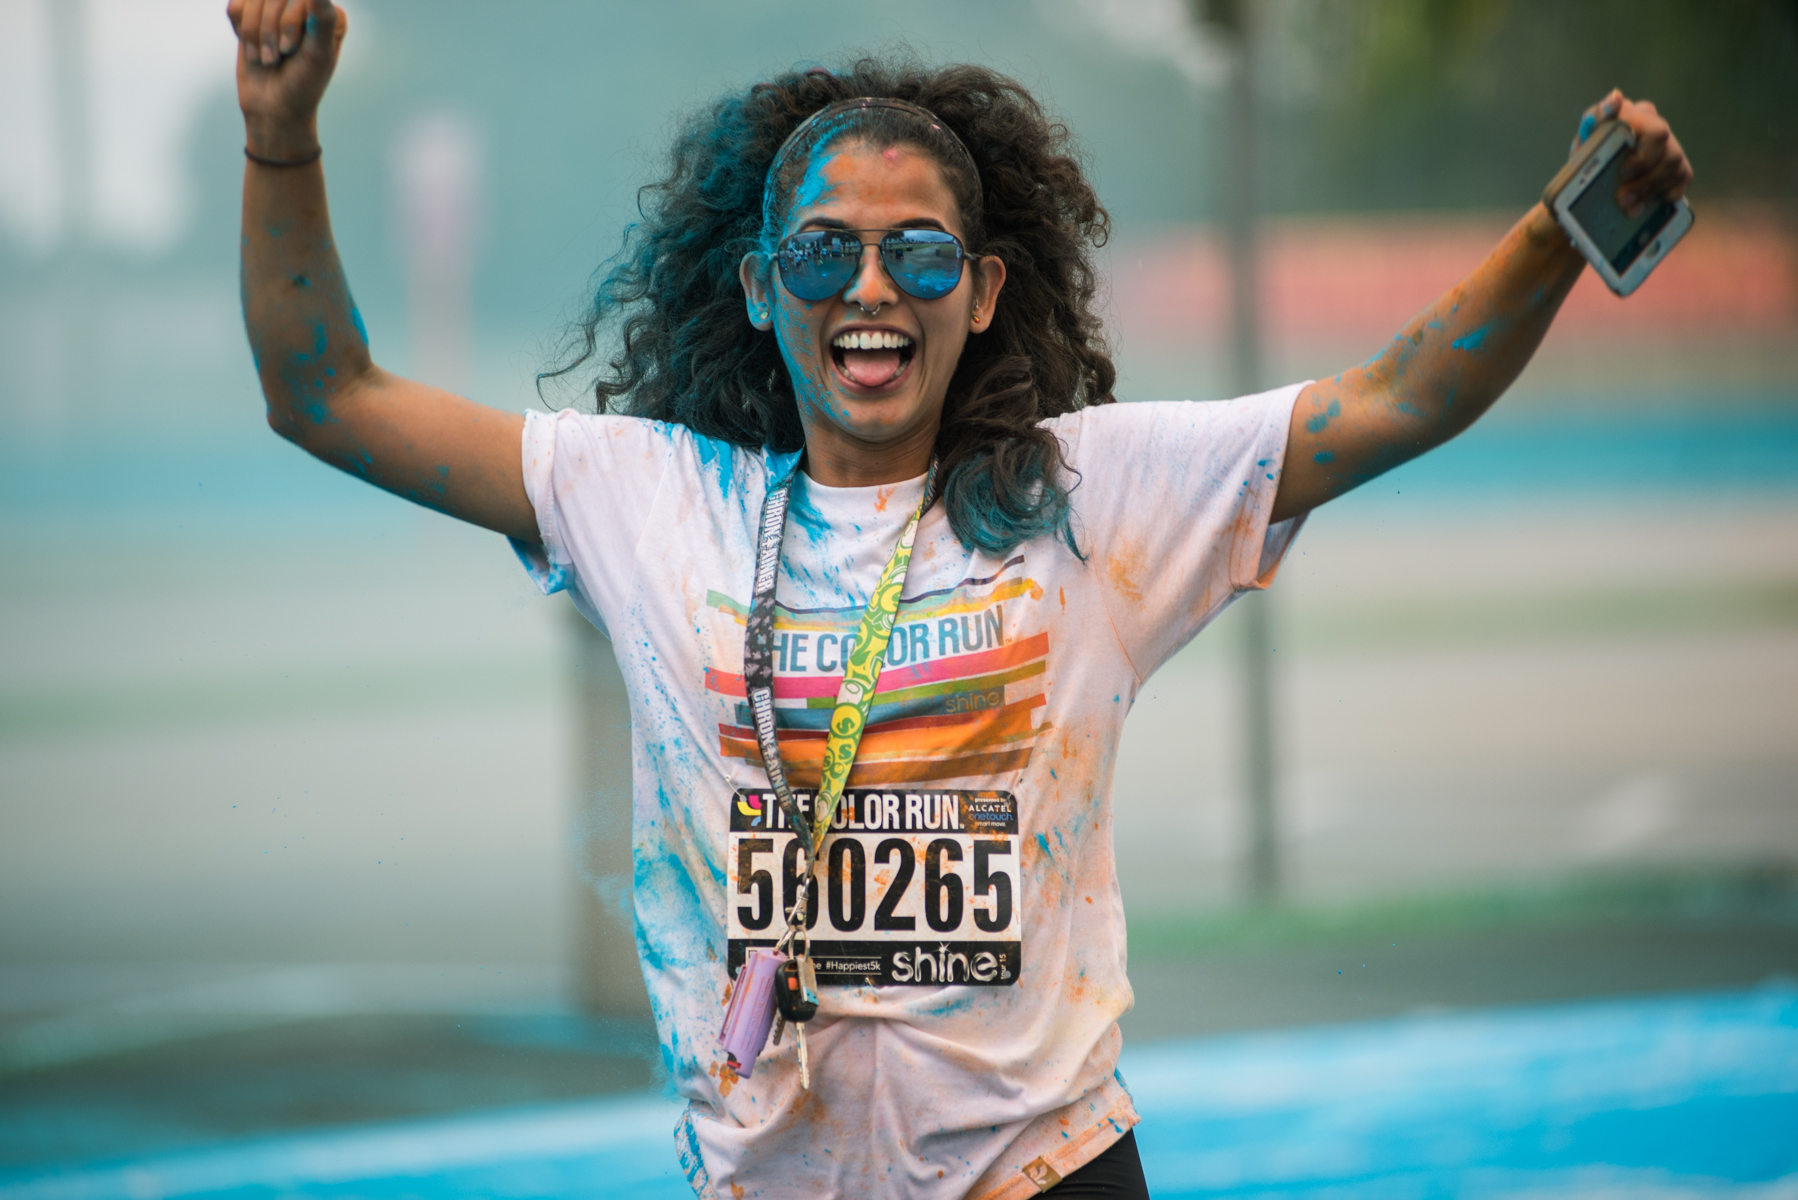 Color_Run-44.jpg